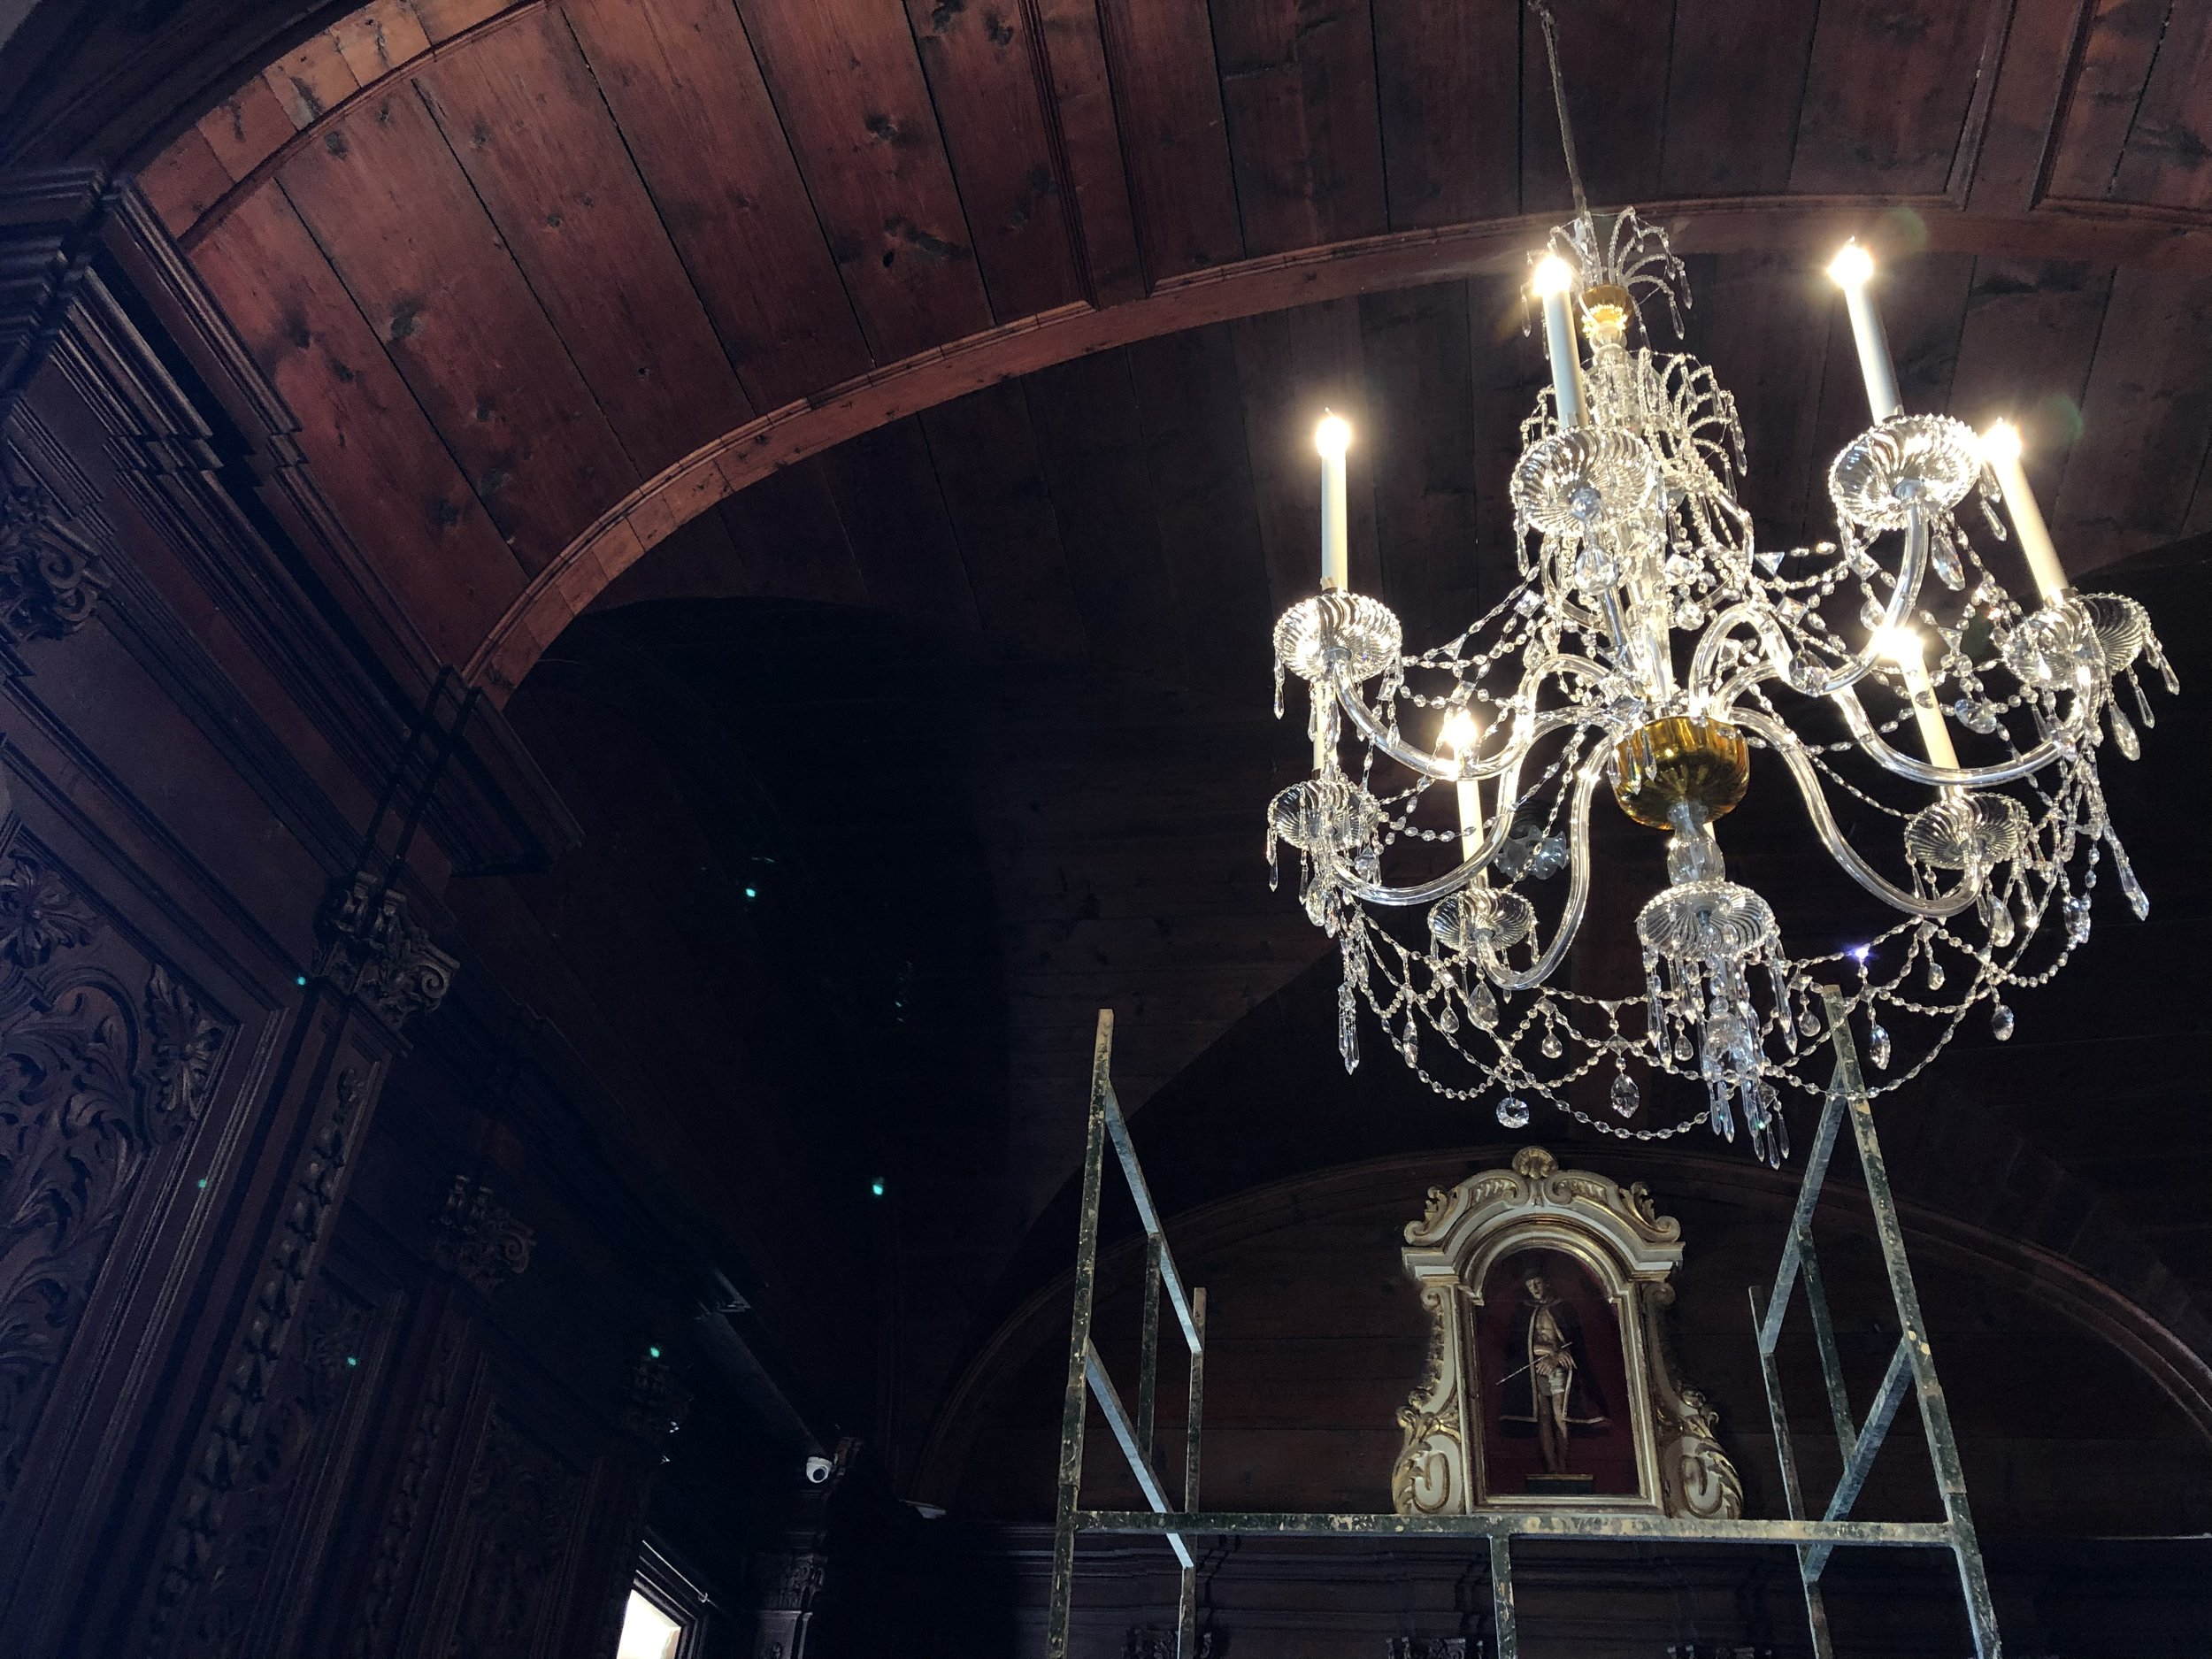 The lit up chandelier against the wood panelling of the sacristy